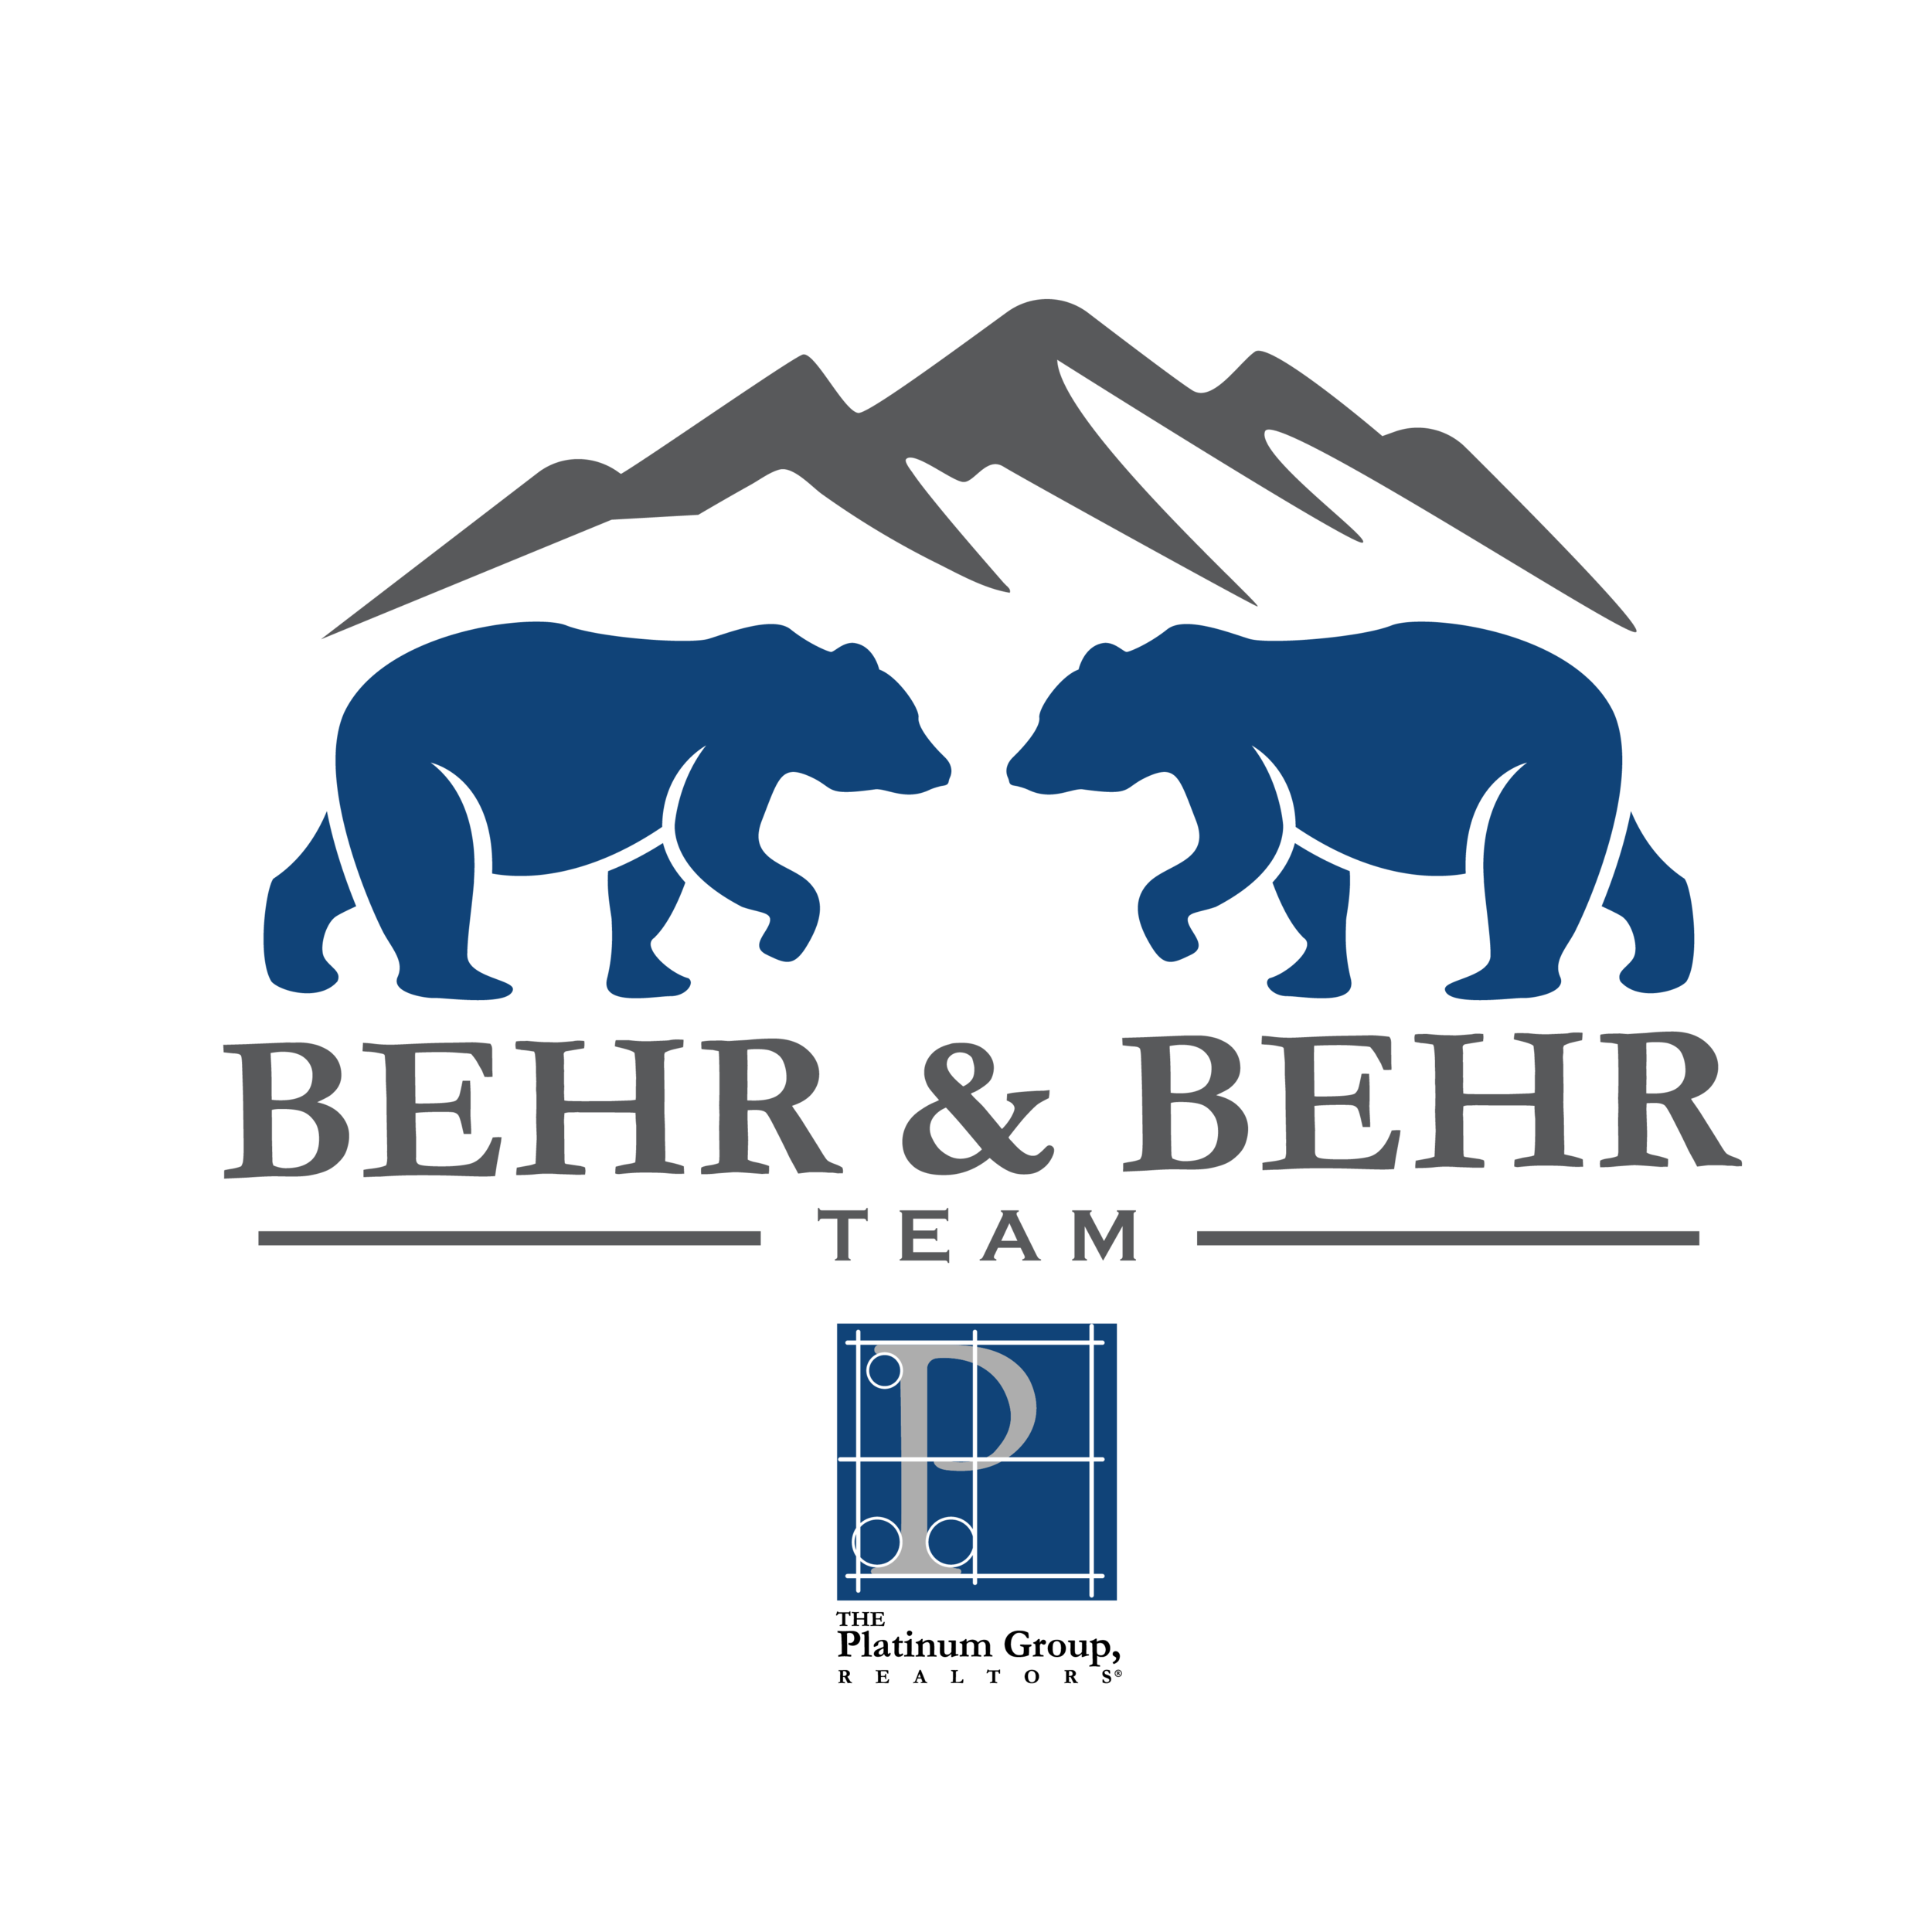 BEHR & BEHR_MAIN_B_Transparent-01.png